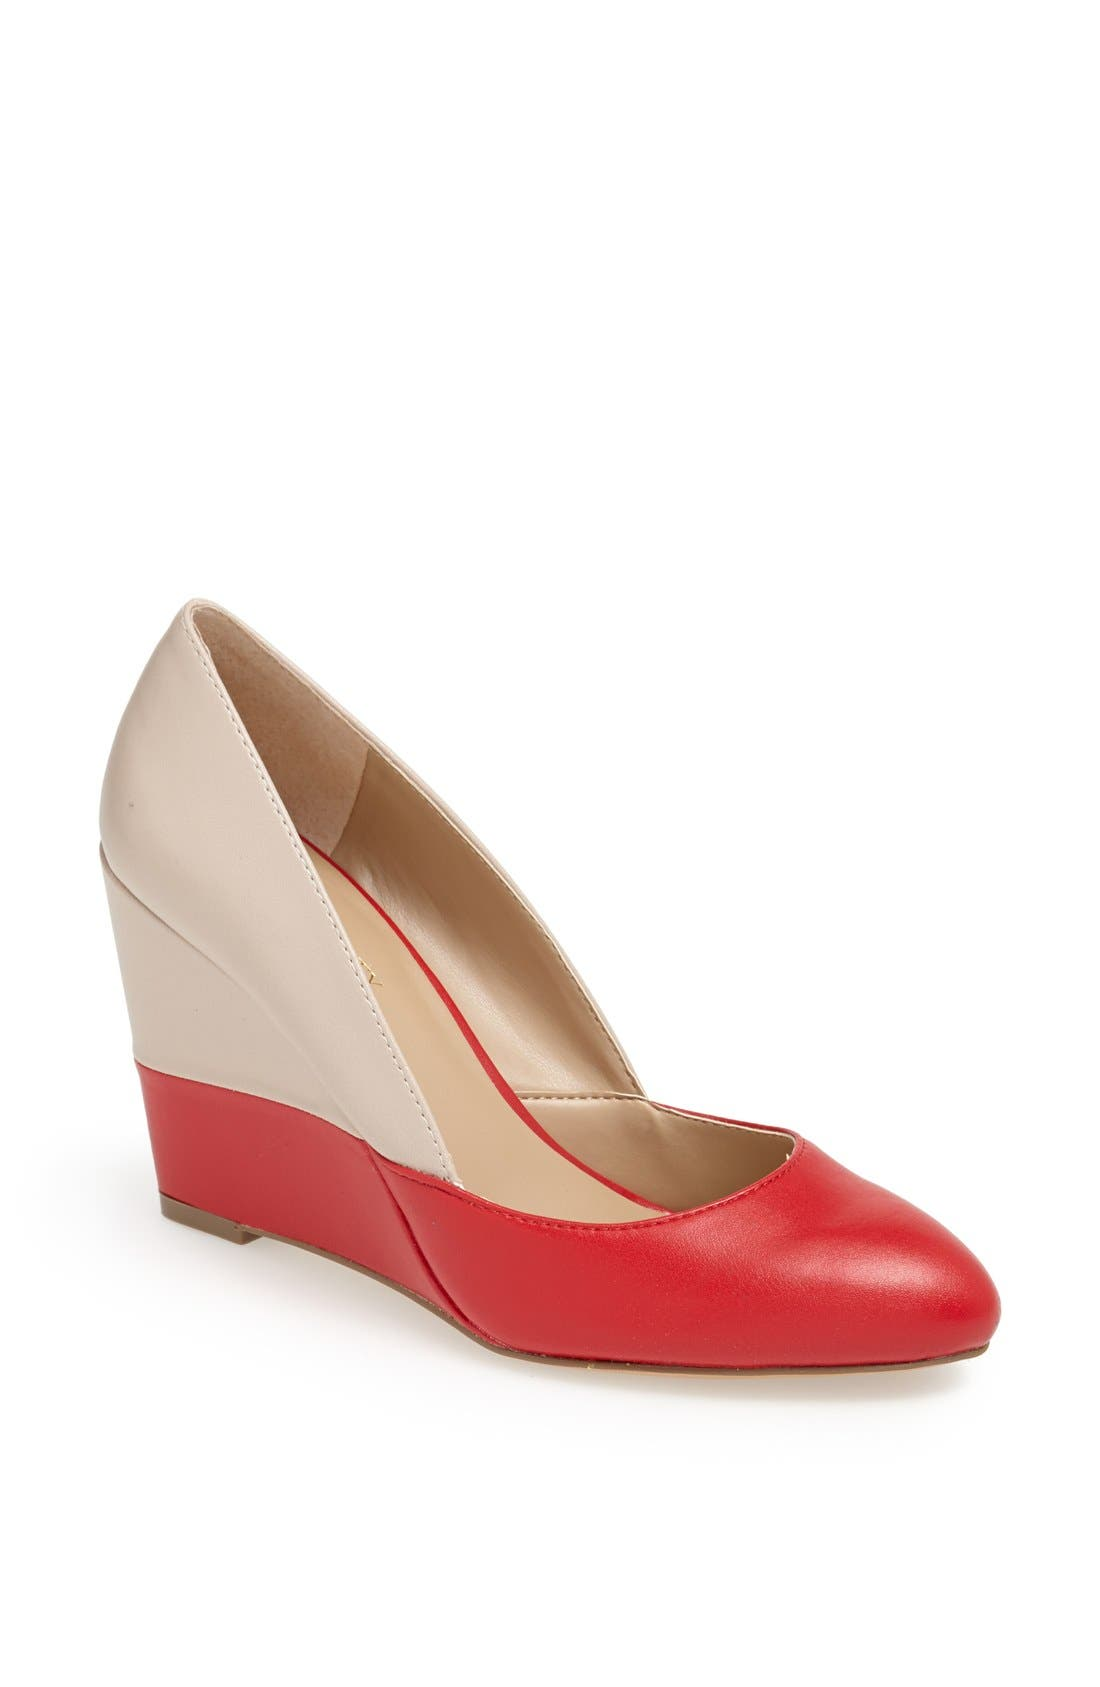 Main Image - Sole Society 'Maile' Pump